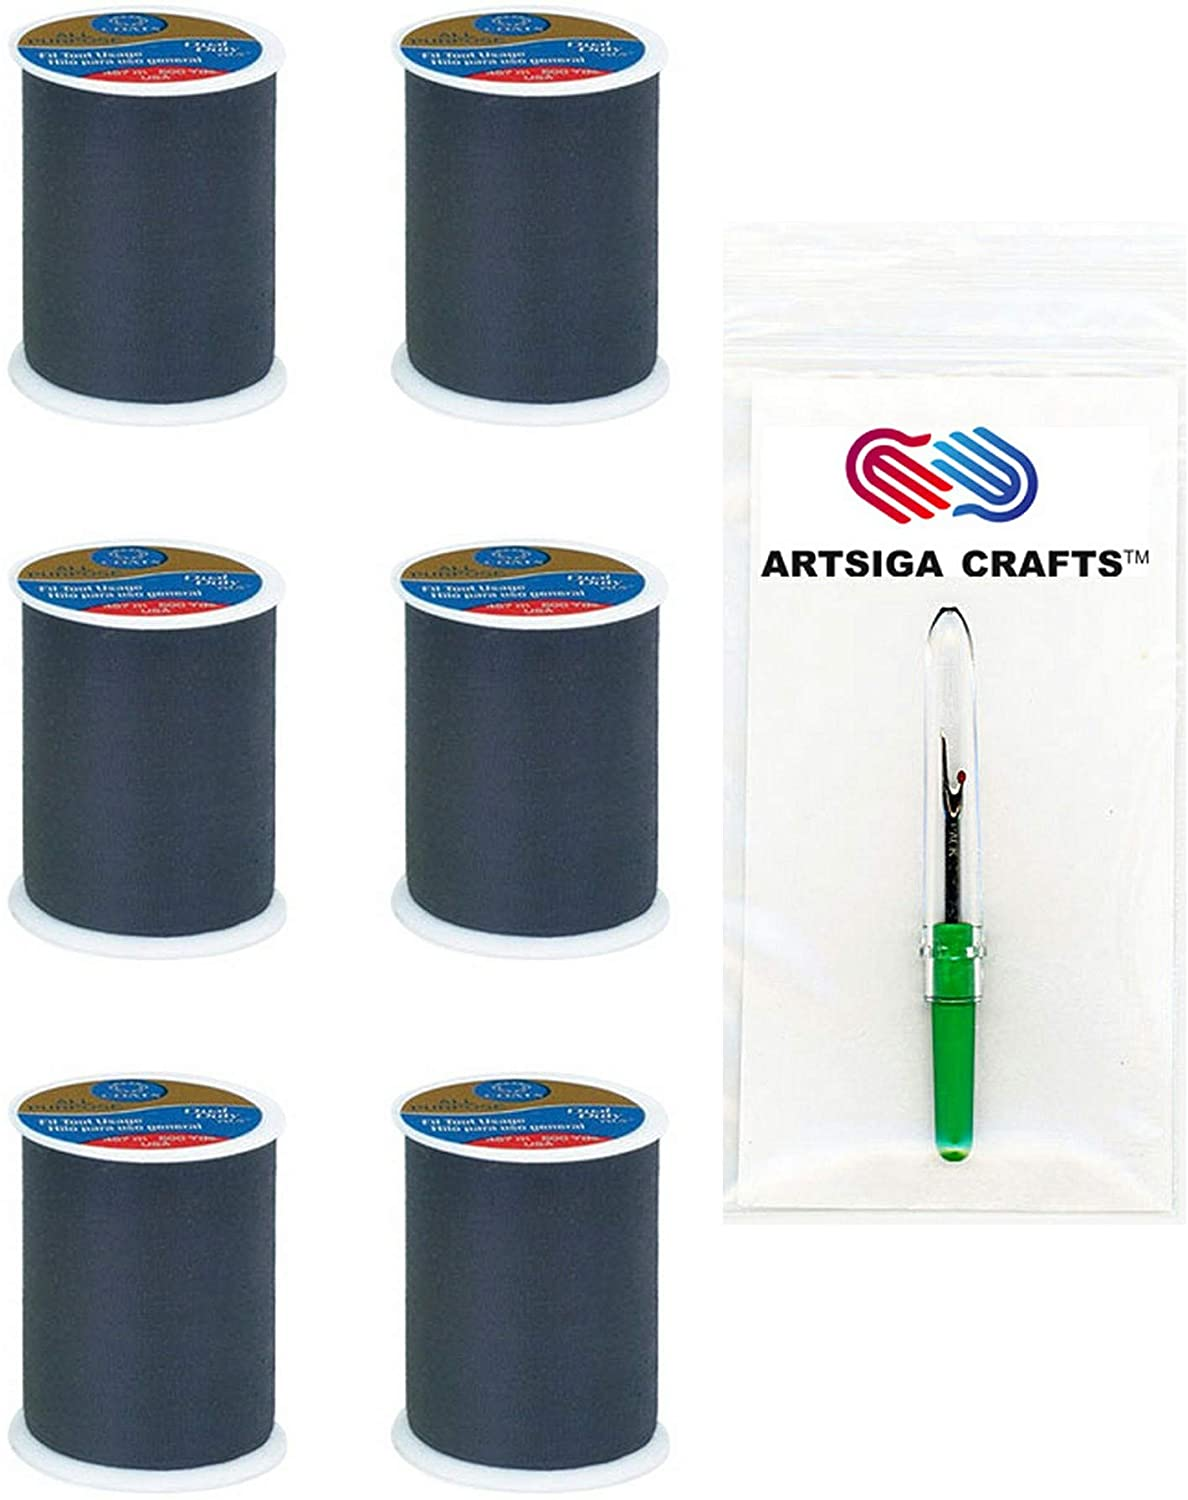 Coats & Clark Sewing Thread Dual Duty All-Purpose Polyester Thread 400 Yards (6-Pack) Black Bundle with 1 Artsiga Crafts Seam Ripper C-230-002-6P